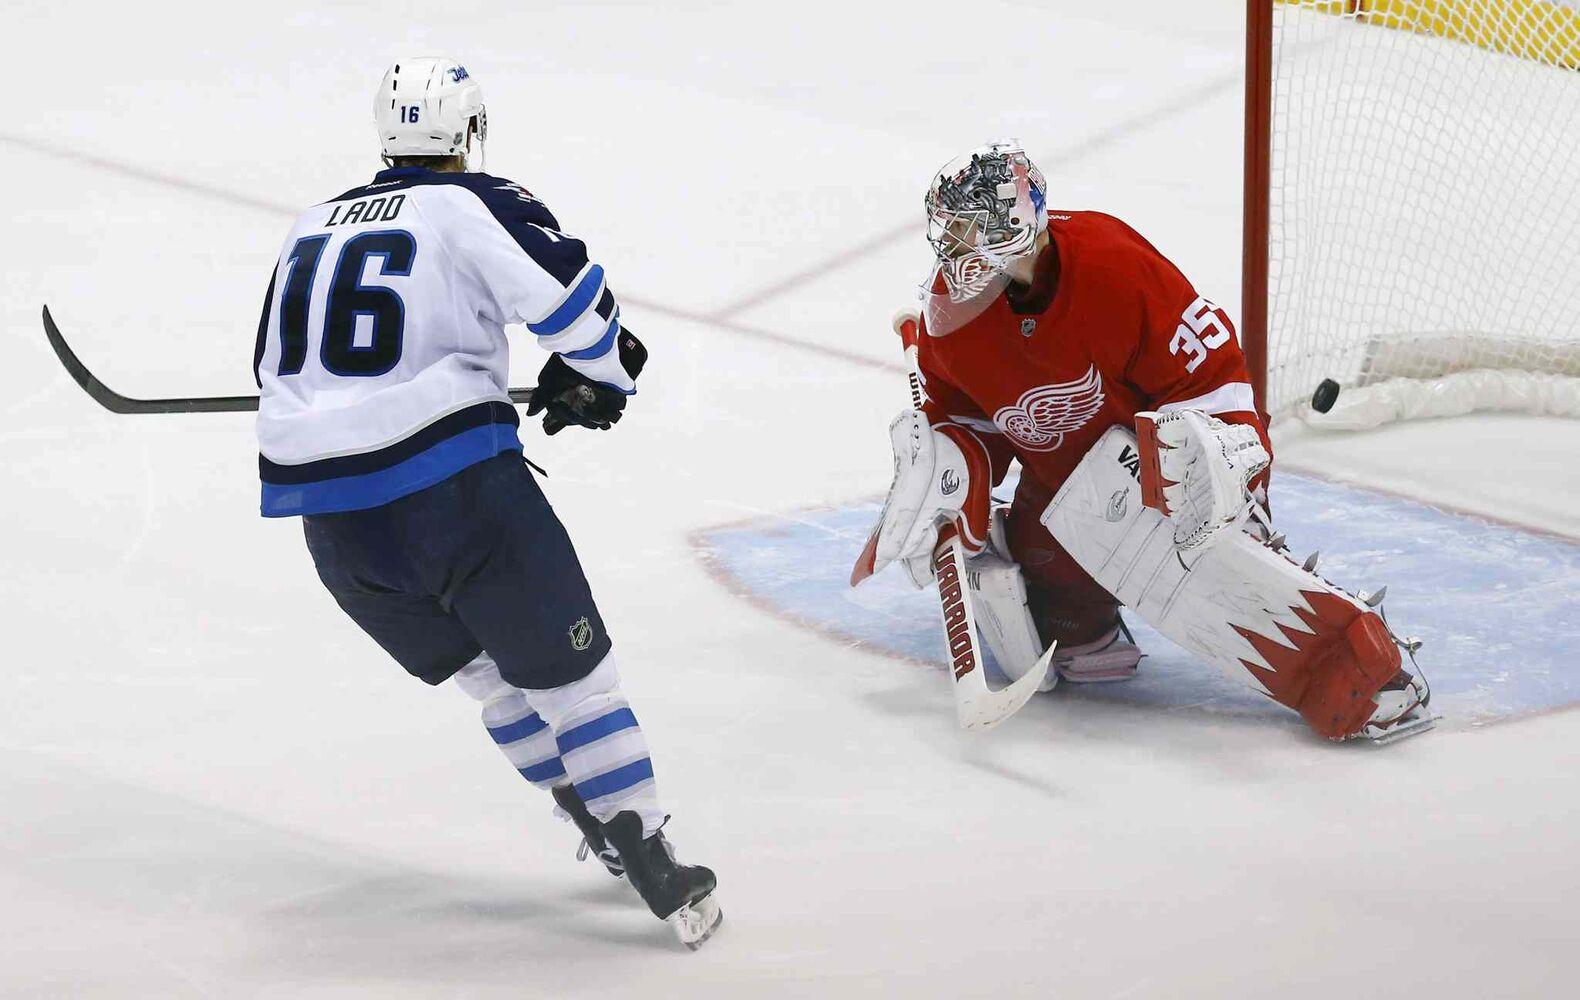 Winnipeg Jets captain Andrew Ladd scores the deciding goal against Detroit Red Wings goalie Jimmy Howard in the shootout goal, giving the Jets a 3-2 win. (PAUL SANCYA / THE ASSOCIATED PRESS)